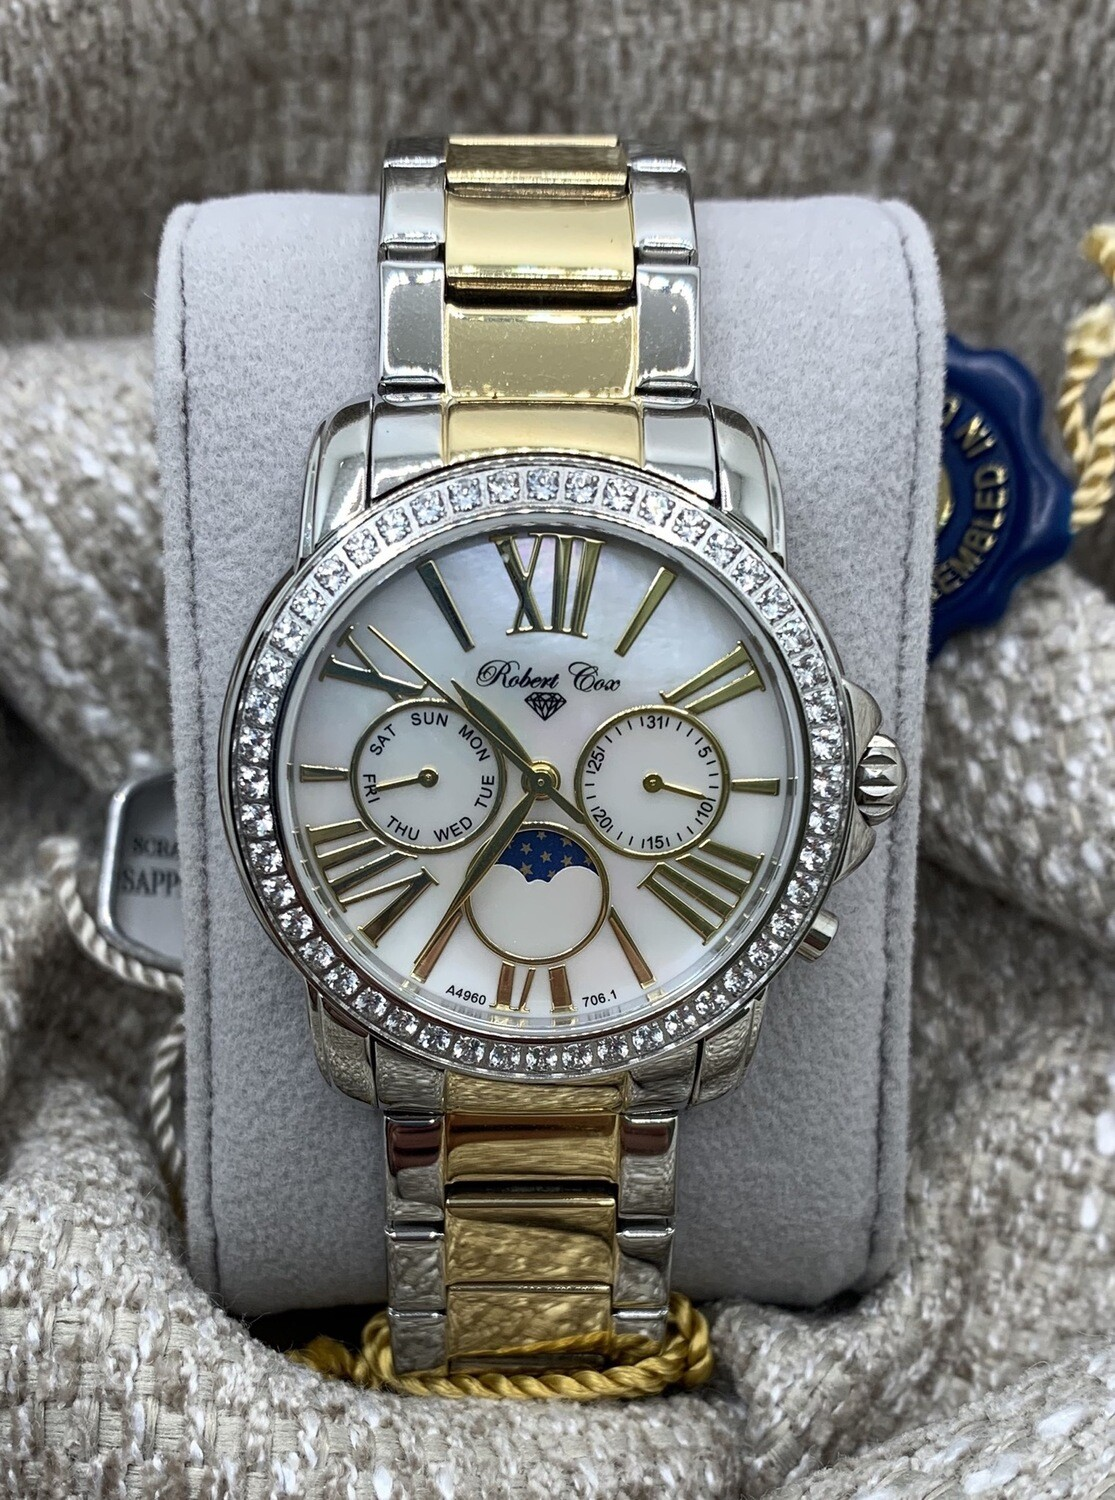 Two Tone Men's Robert Cox Wrist Watch Mother Of Pearl Dial With White Topaz Accents